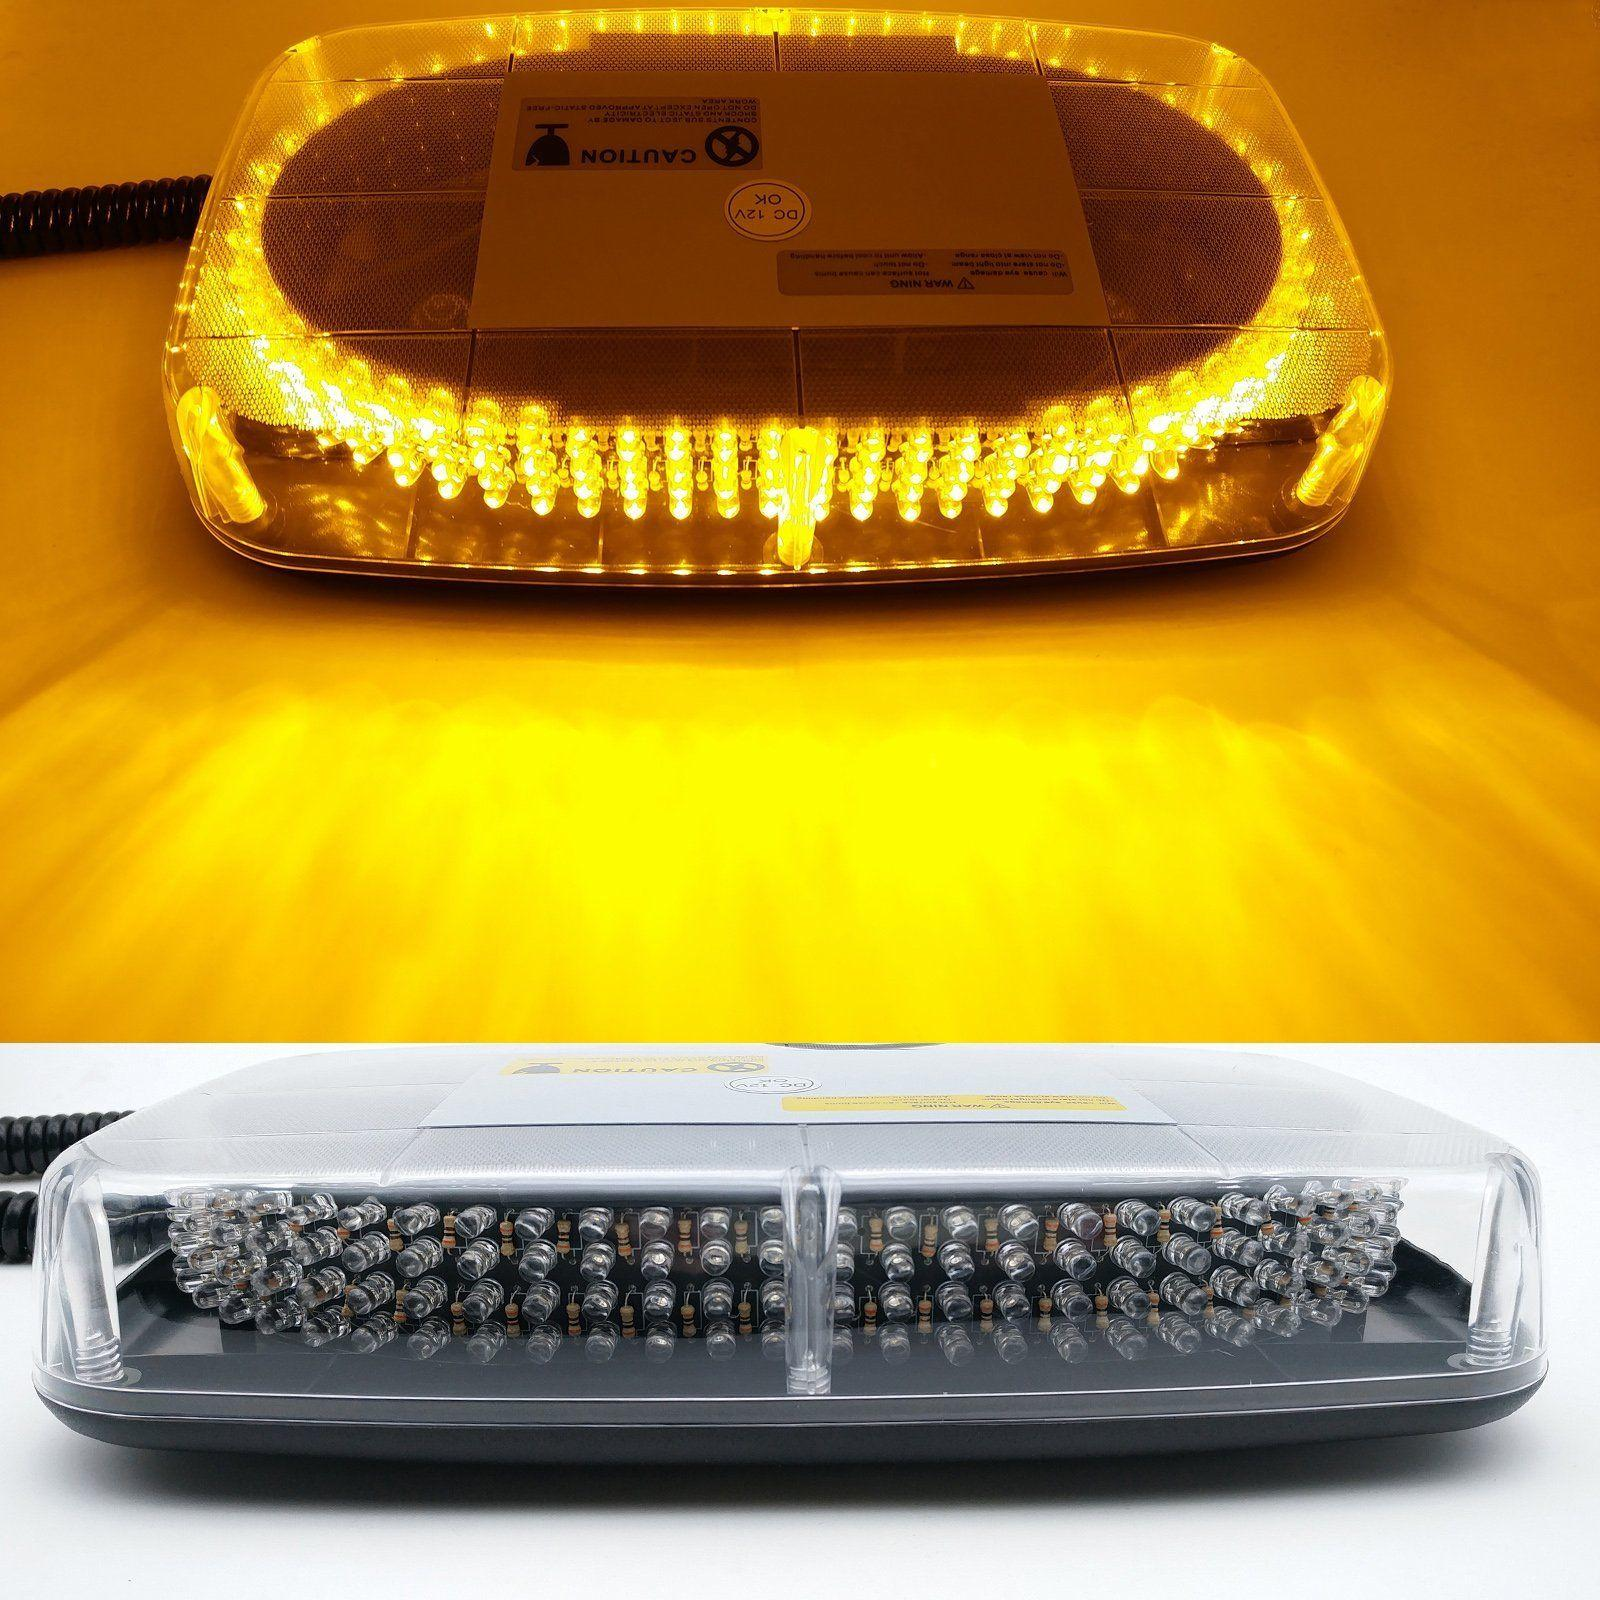 240 LEDs Barra de luces Techo superior Amarillo ámbar Baliza de emergencia Advertencia Flash Luz estroboscópica de advertencia